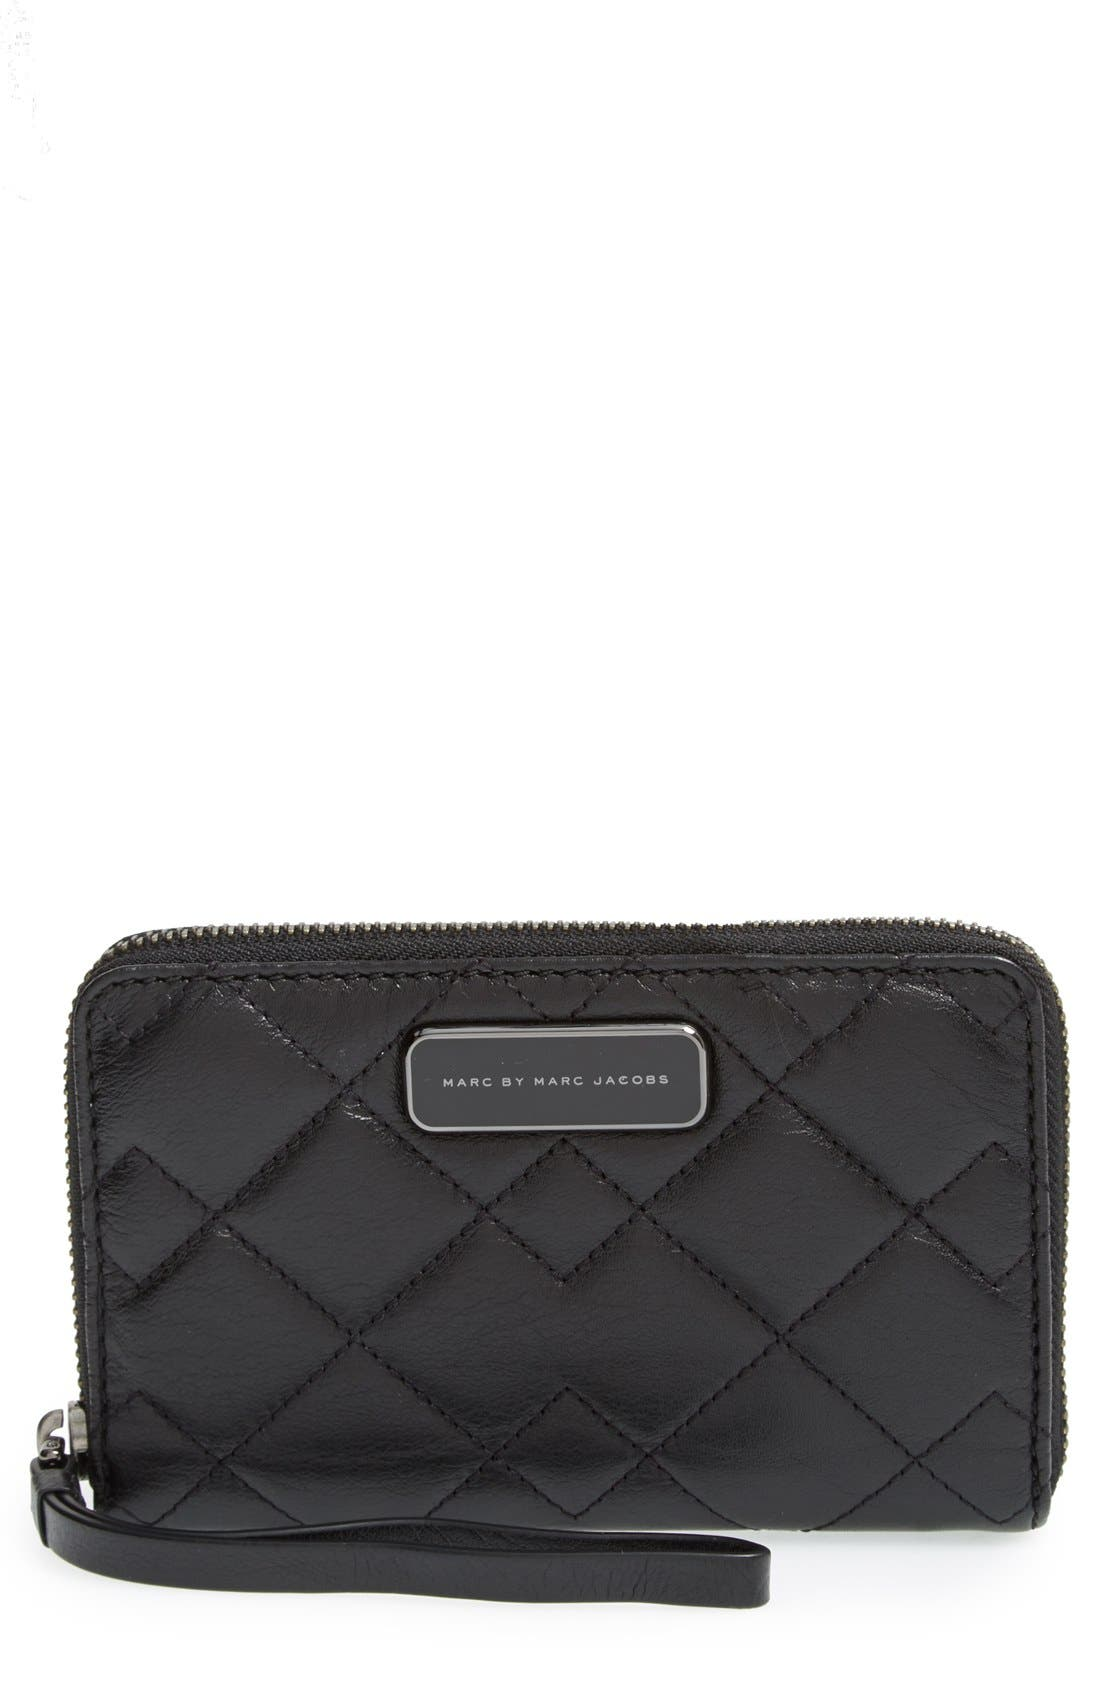 Main Image - MARC BY MARC JACOBS 'Crosby - Wingman' Quilted Leather Phone Wristlet